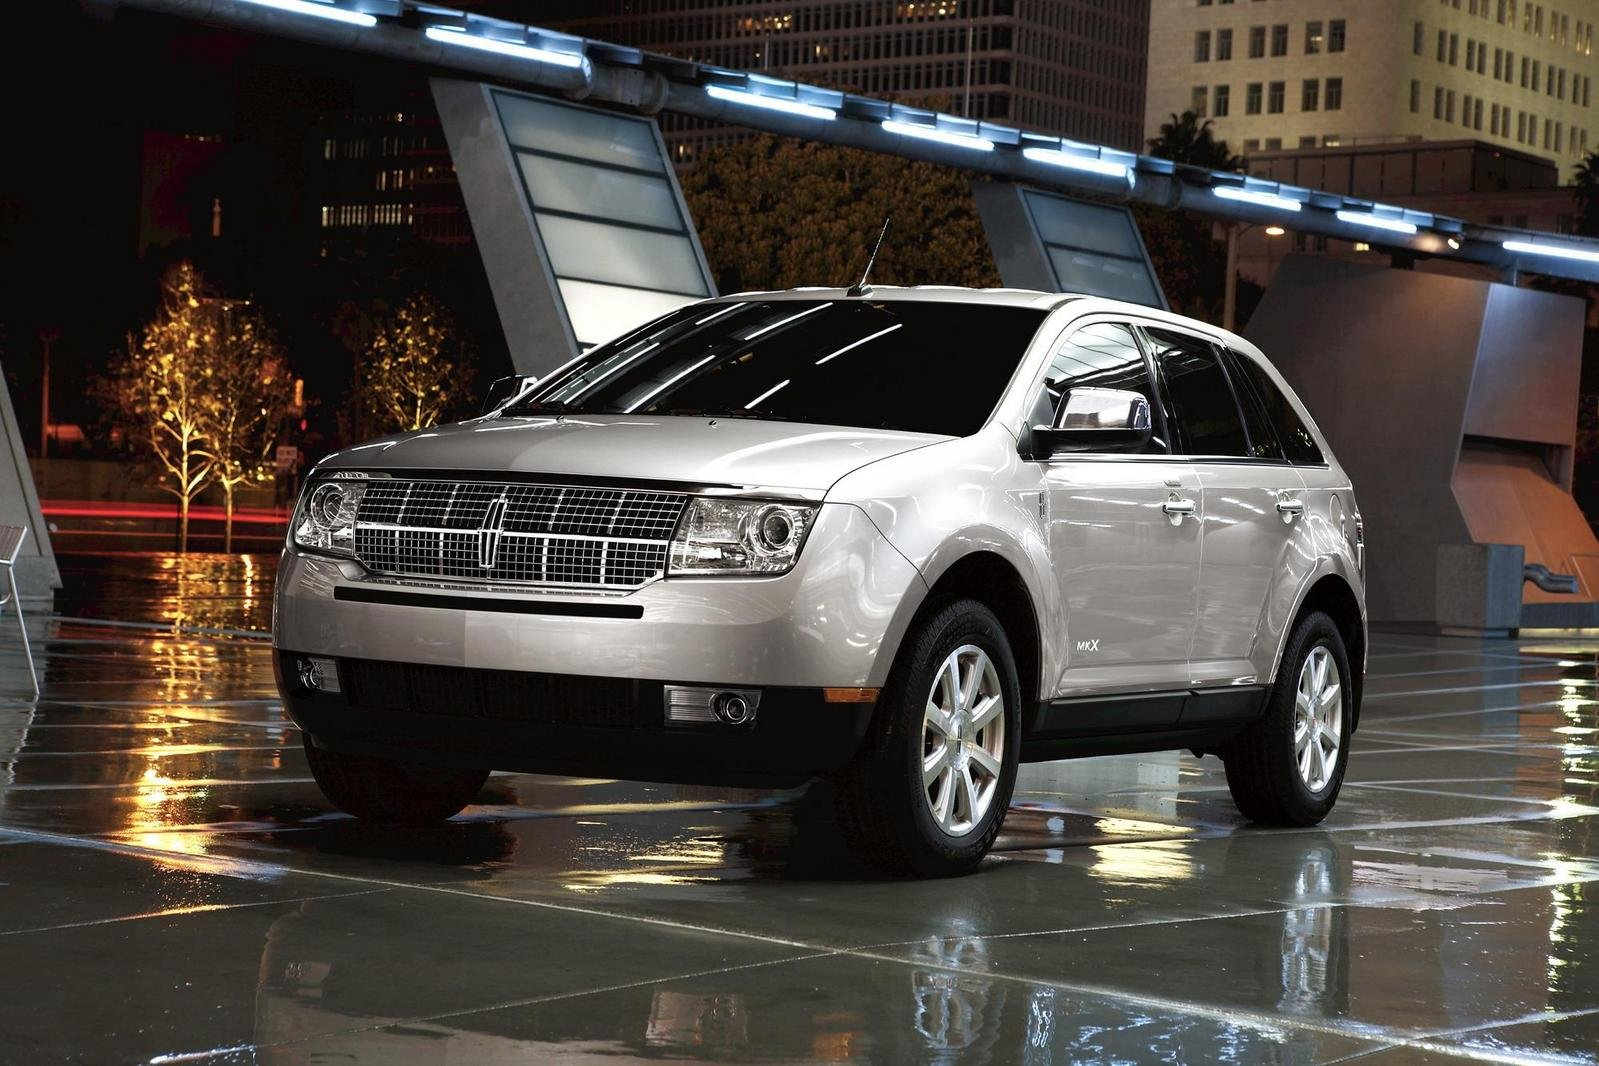 6 Speed Transmission >> 2010 Lincoln MKX | Top Speed